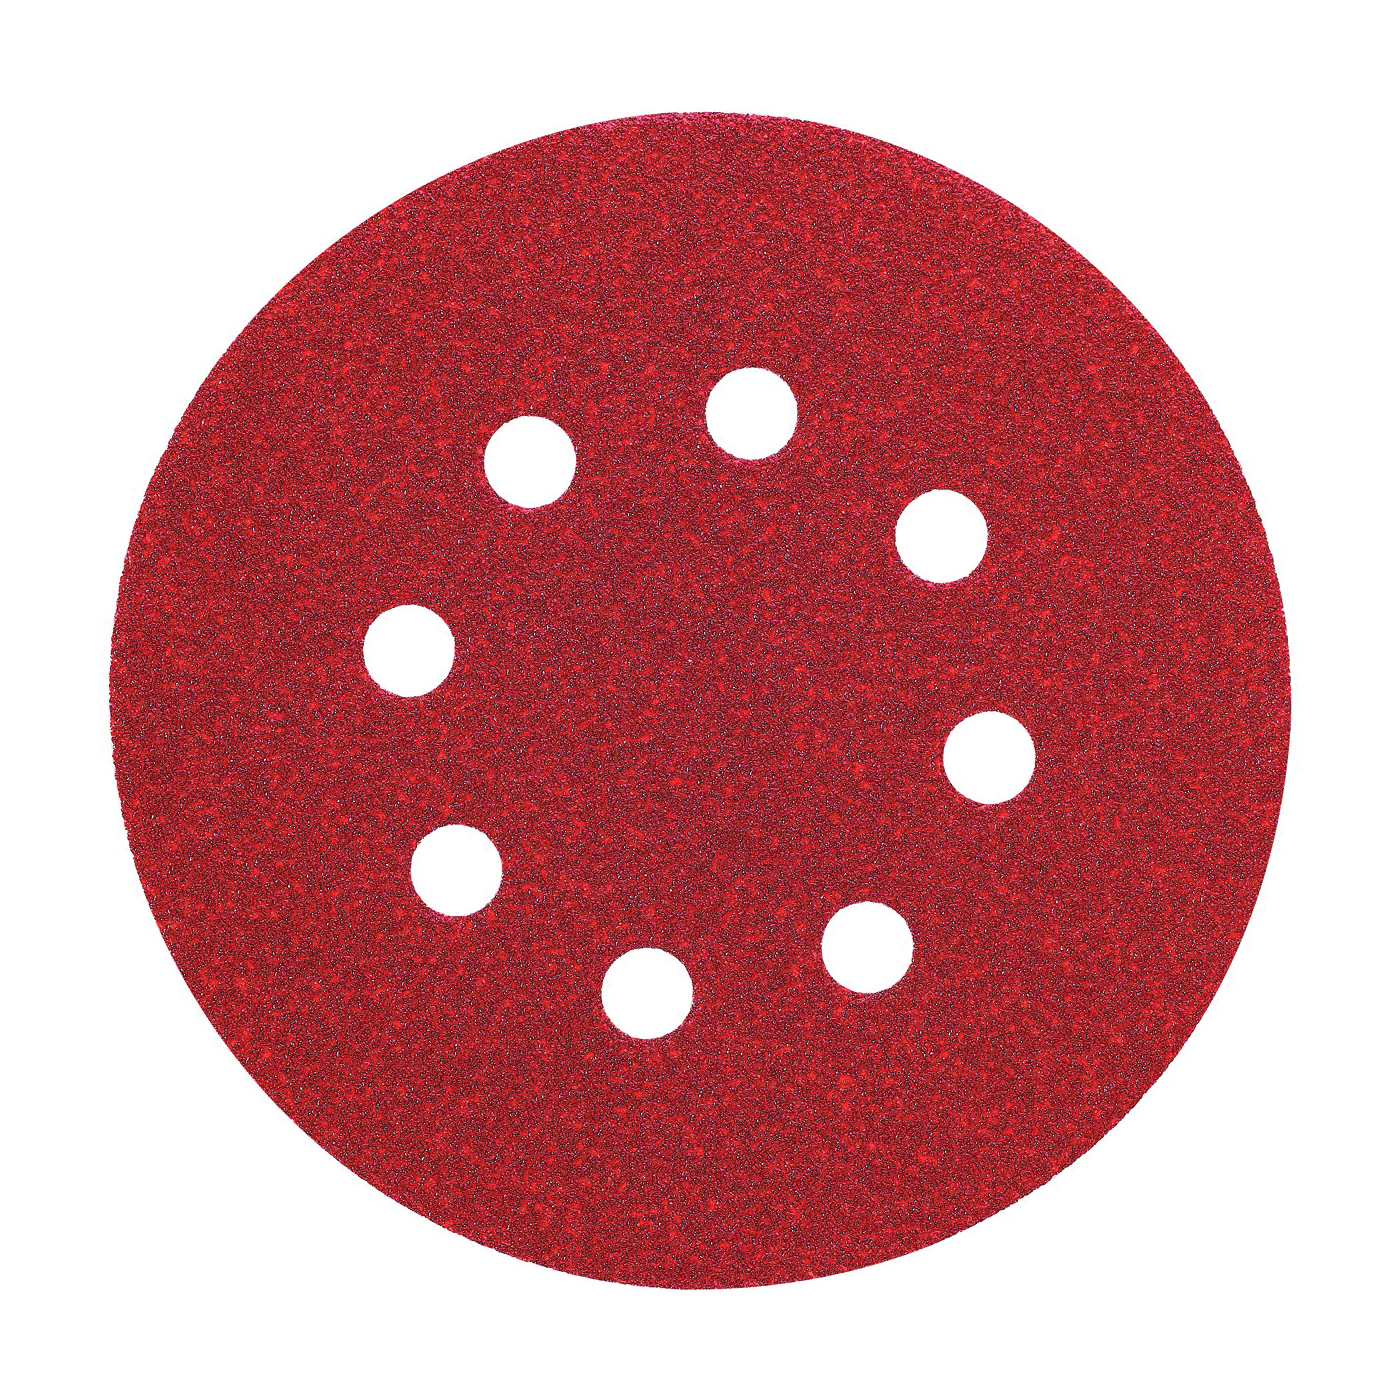 Picture of DeWALT DW4311 Sanding Disc, 5 in Dia, Coated, 120 Grit, Aluminum Oxide Abrasive, Paper Backing, 8-Hole